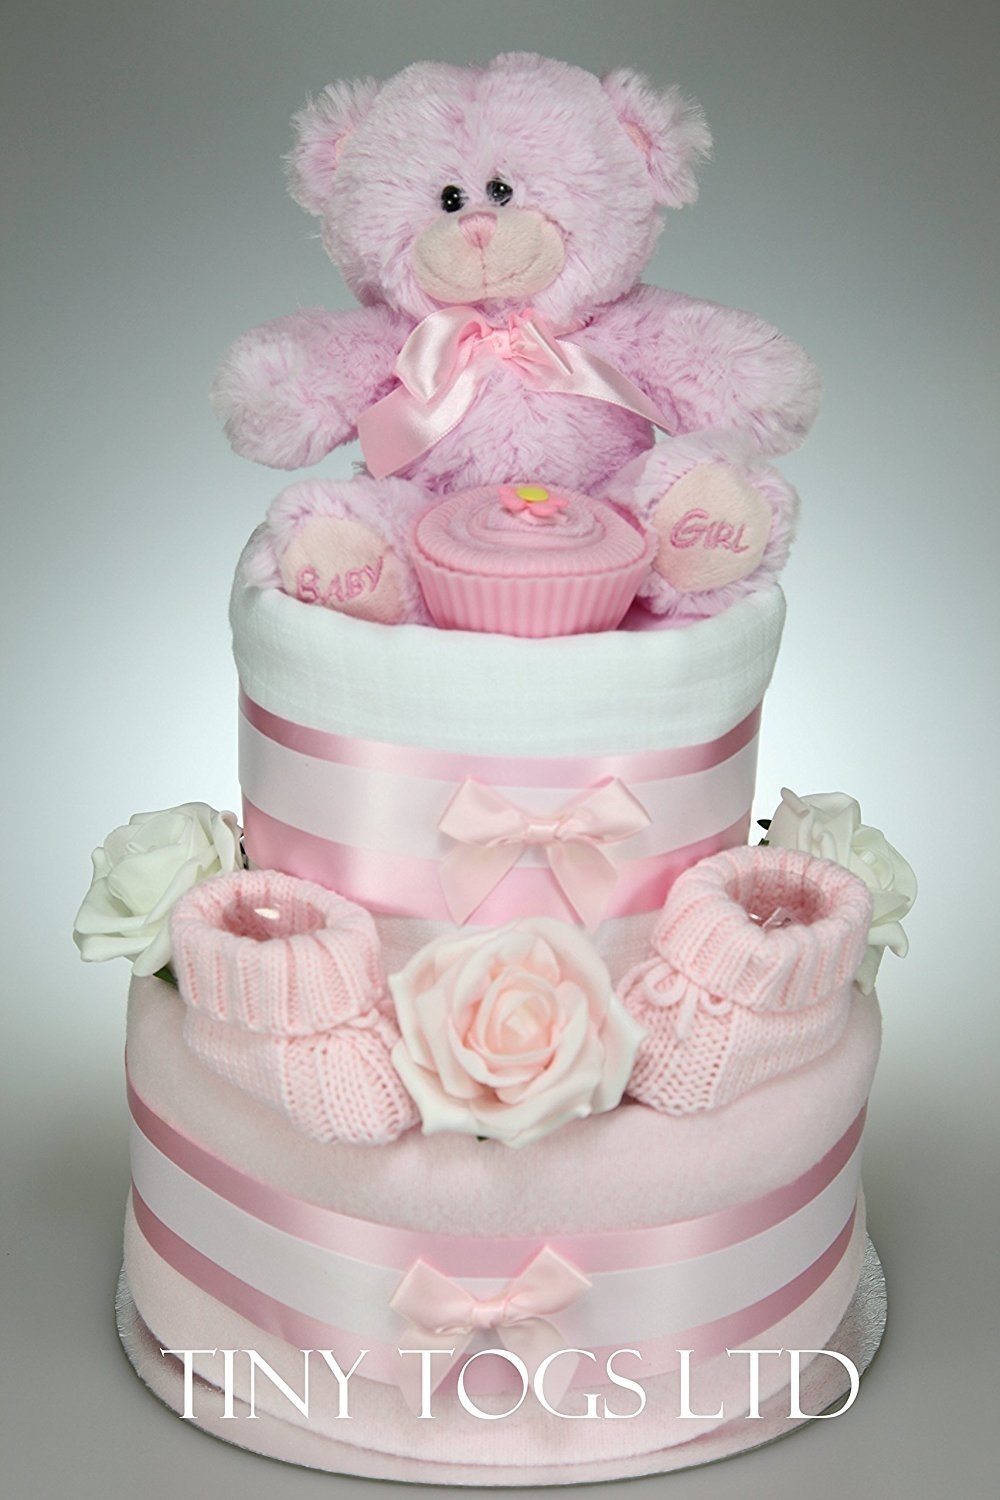 10 Awesome Diaper Cake Ideas For A Girl rare baby shower diaper cake ideas boy bridal gifts decorations 2020